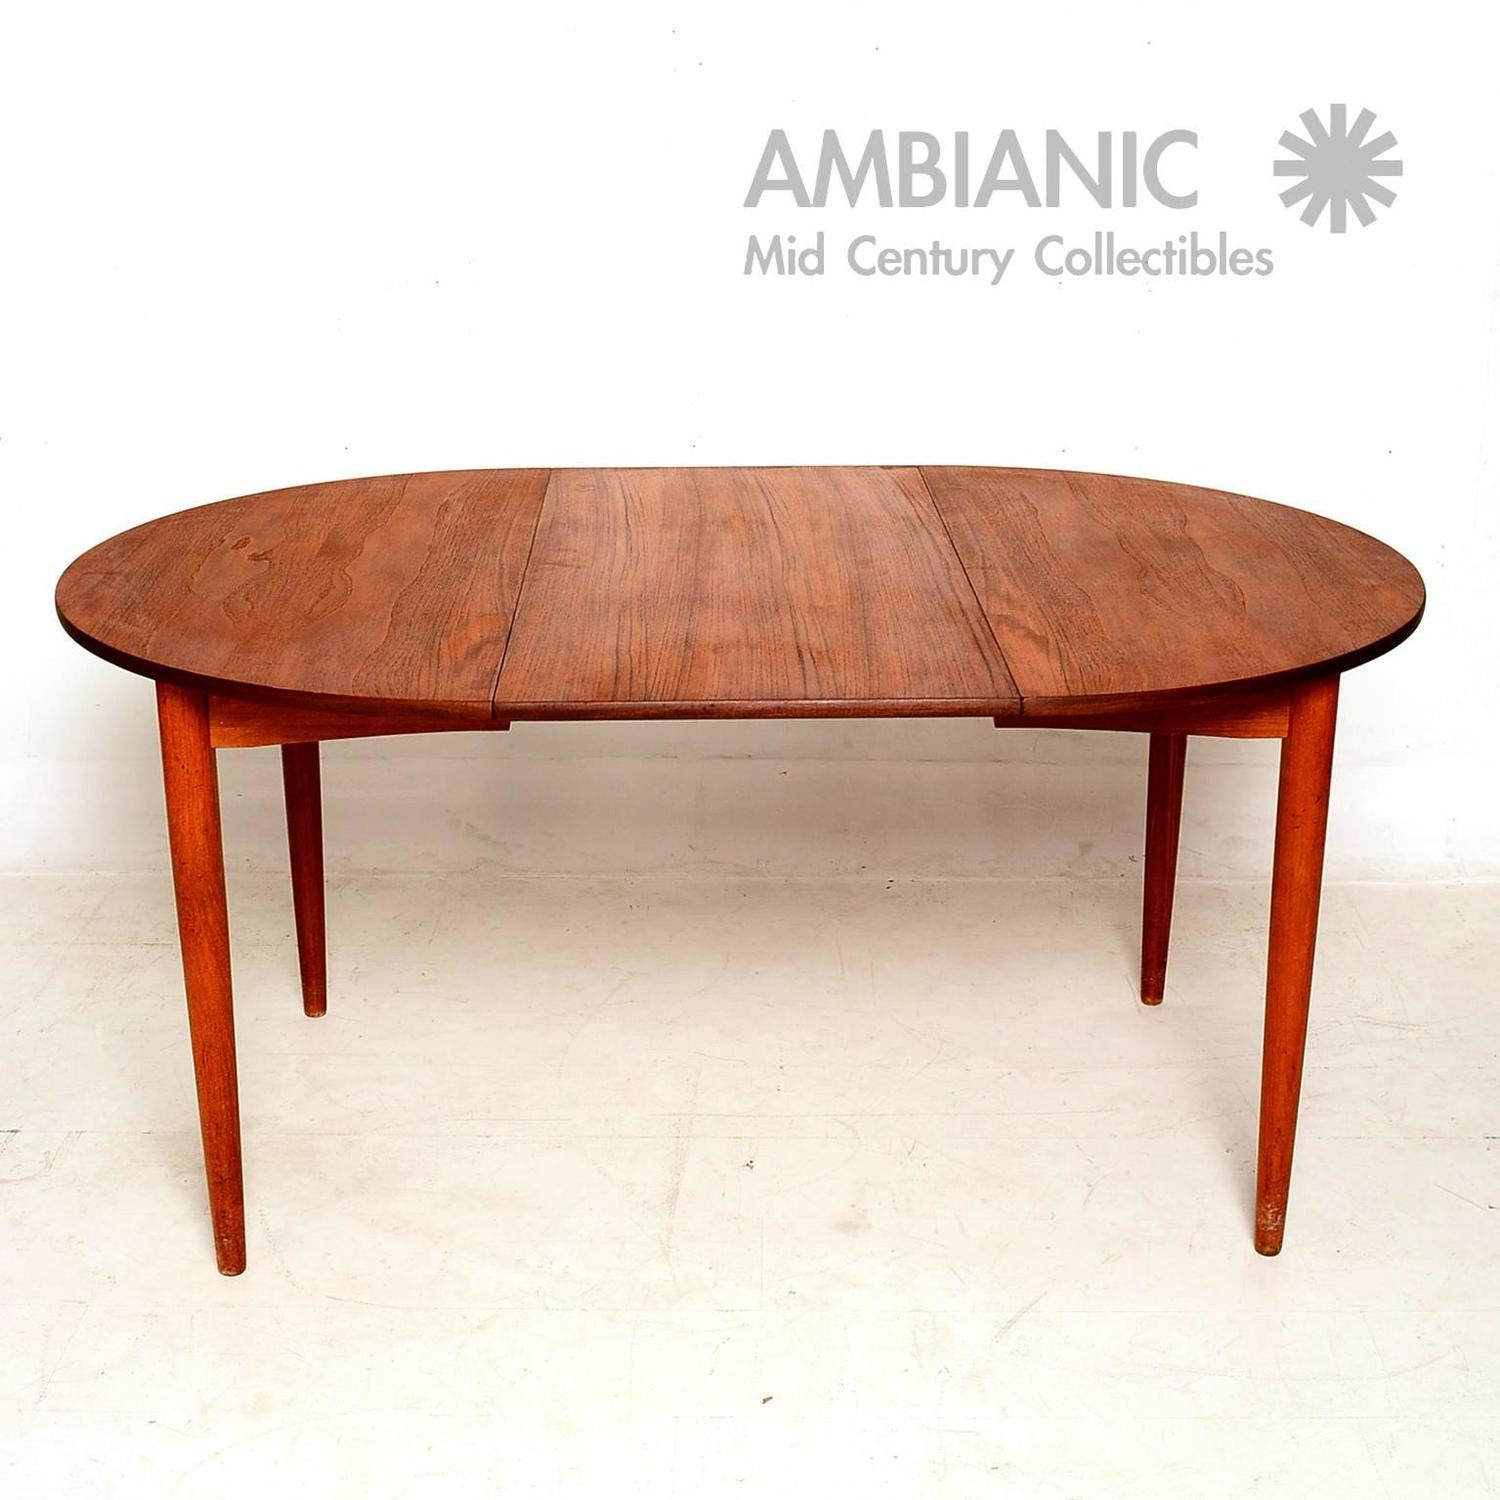 Danish modern teak round oval dining table for sale at 1stdibs for Oval dining table